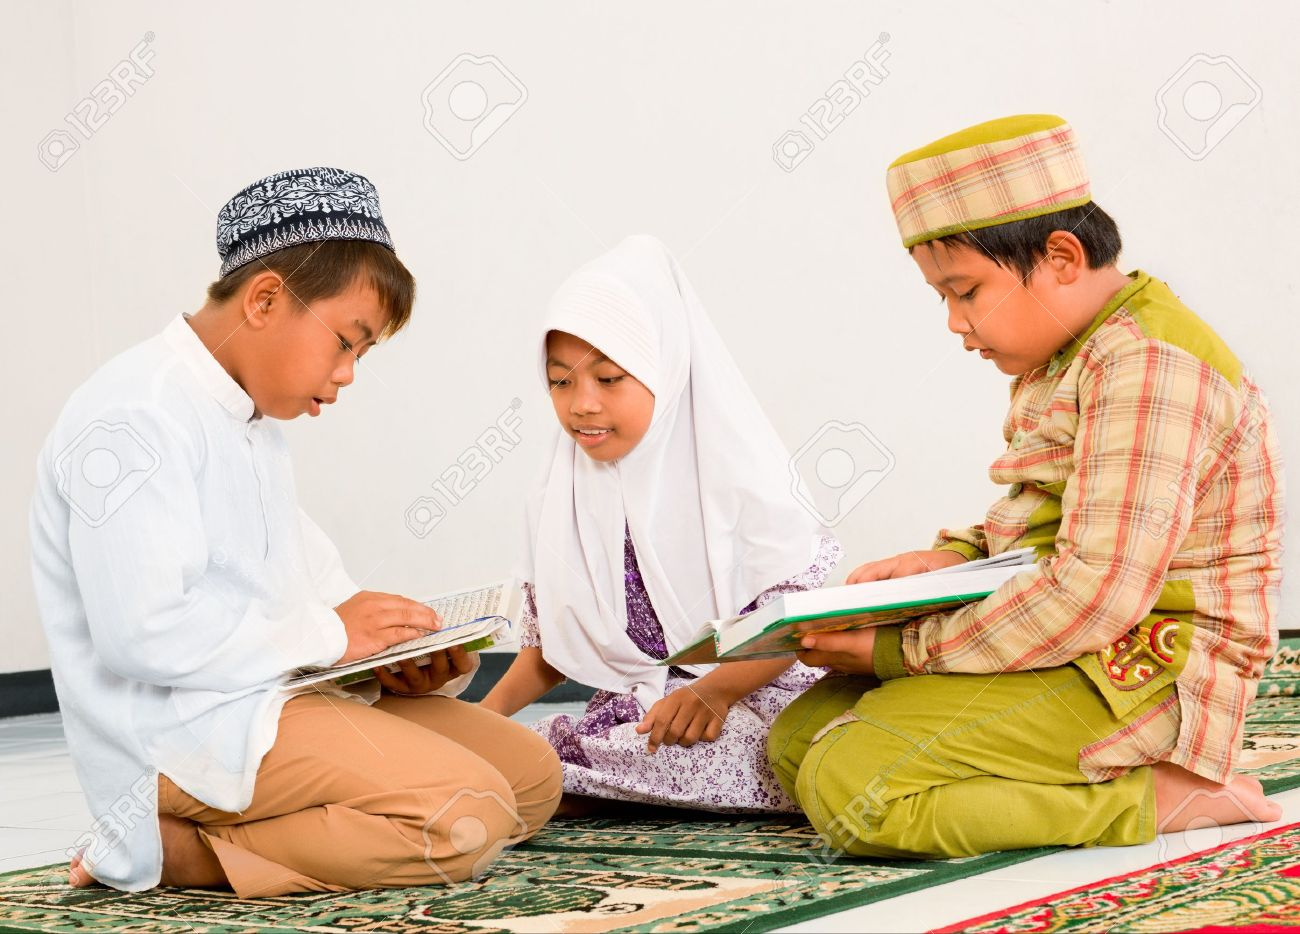 Image result for saudi muslim children